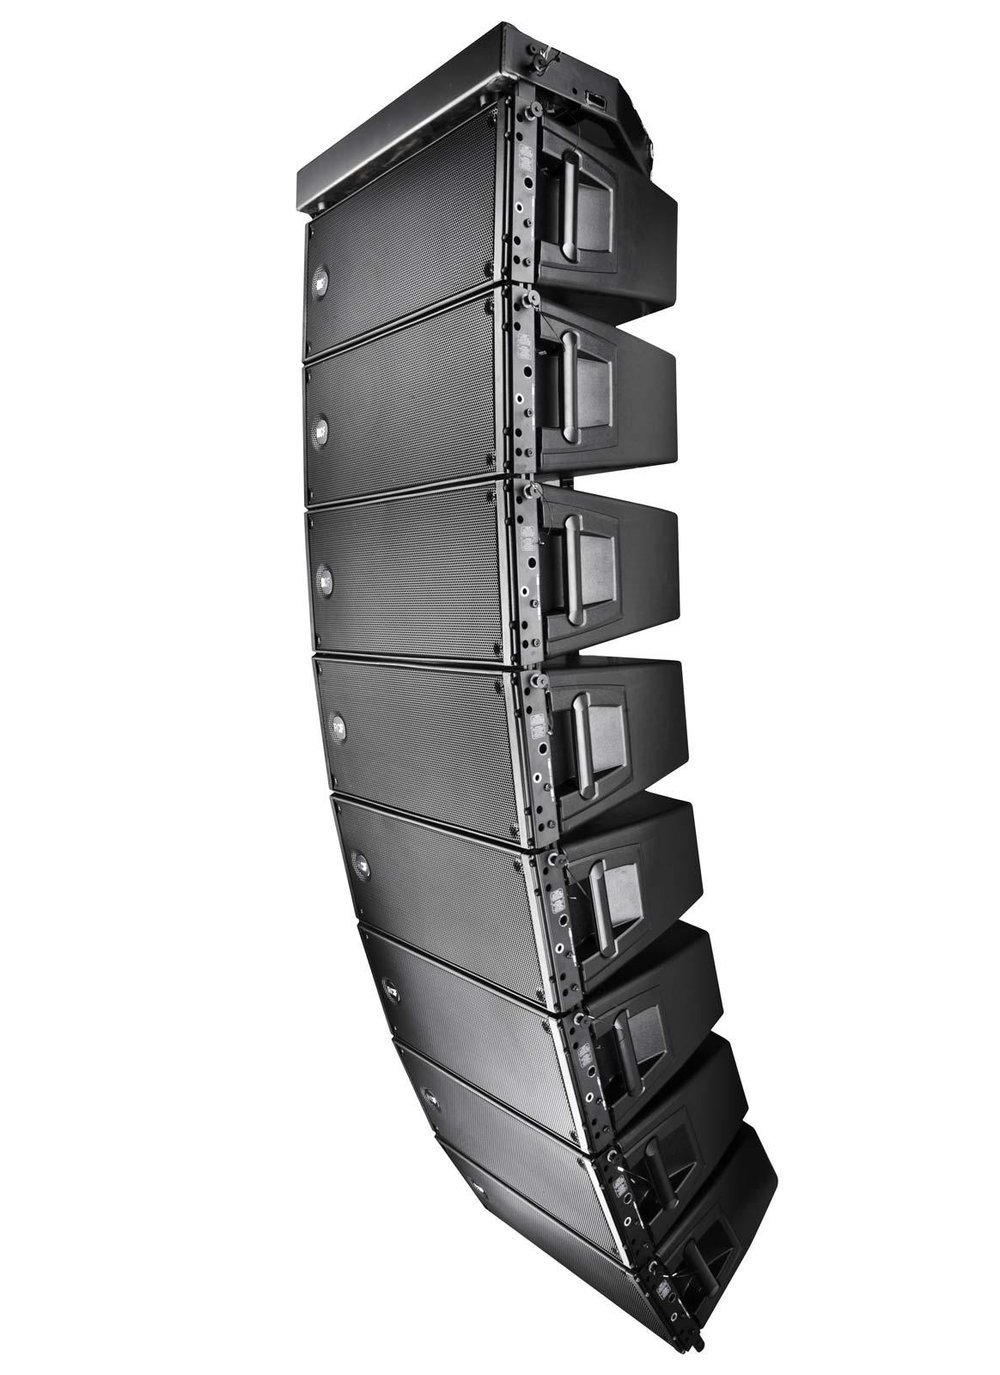 Harmon's is proud to announce a new active line array has made it into our inventory! The rcf hdl20-a with matching sub-8006as! look & listen for it at our next event!